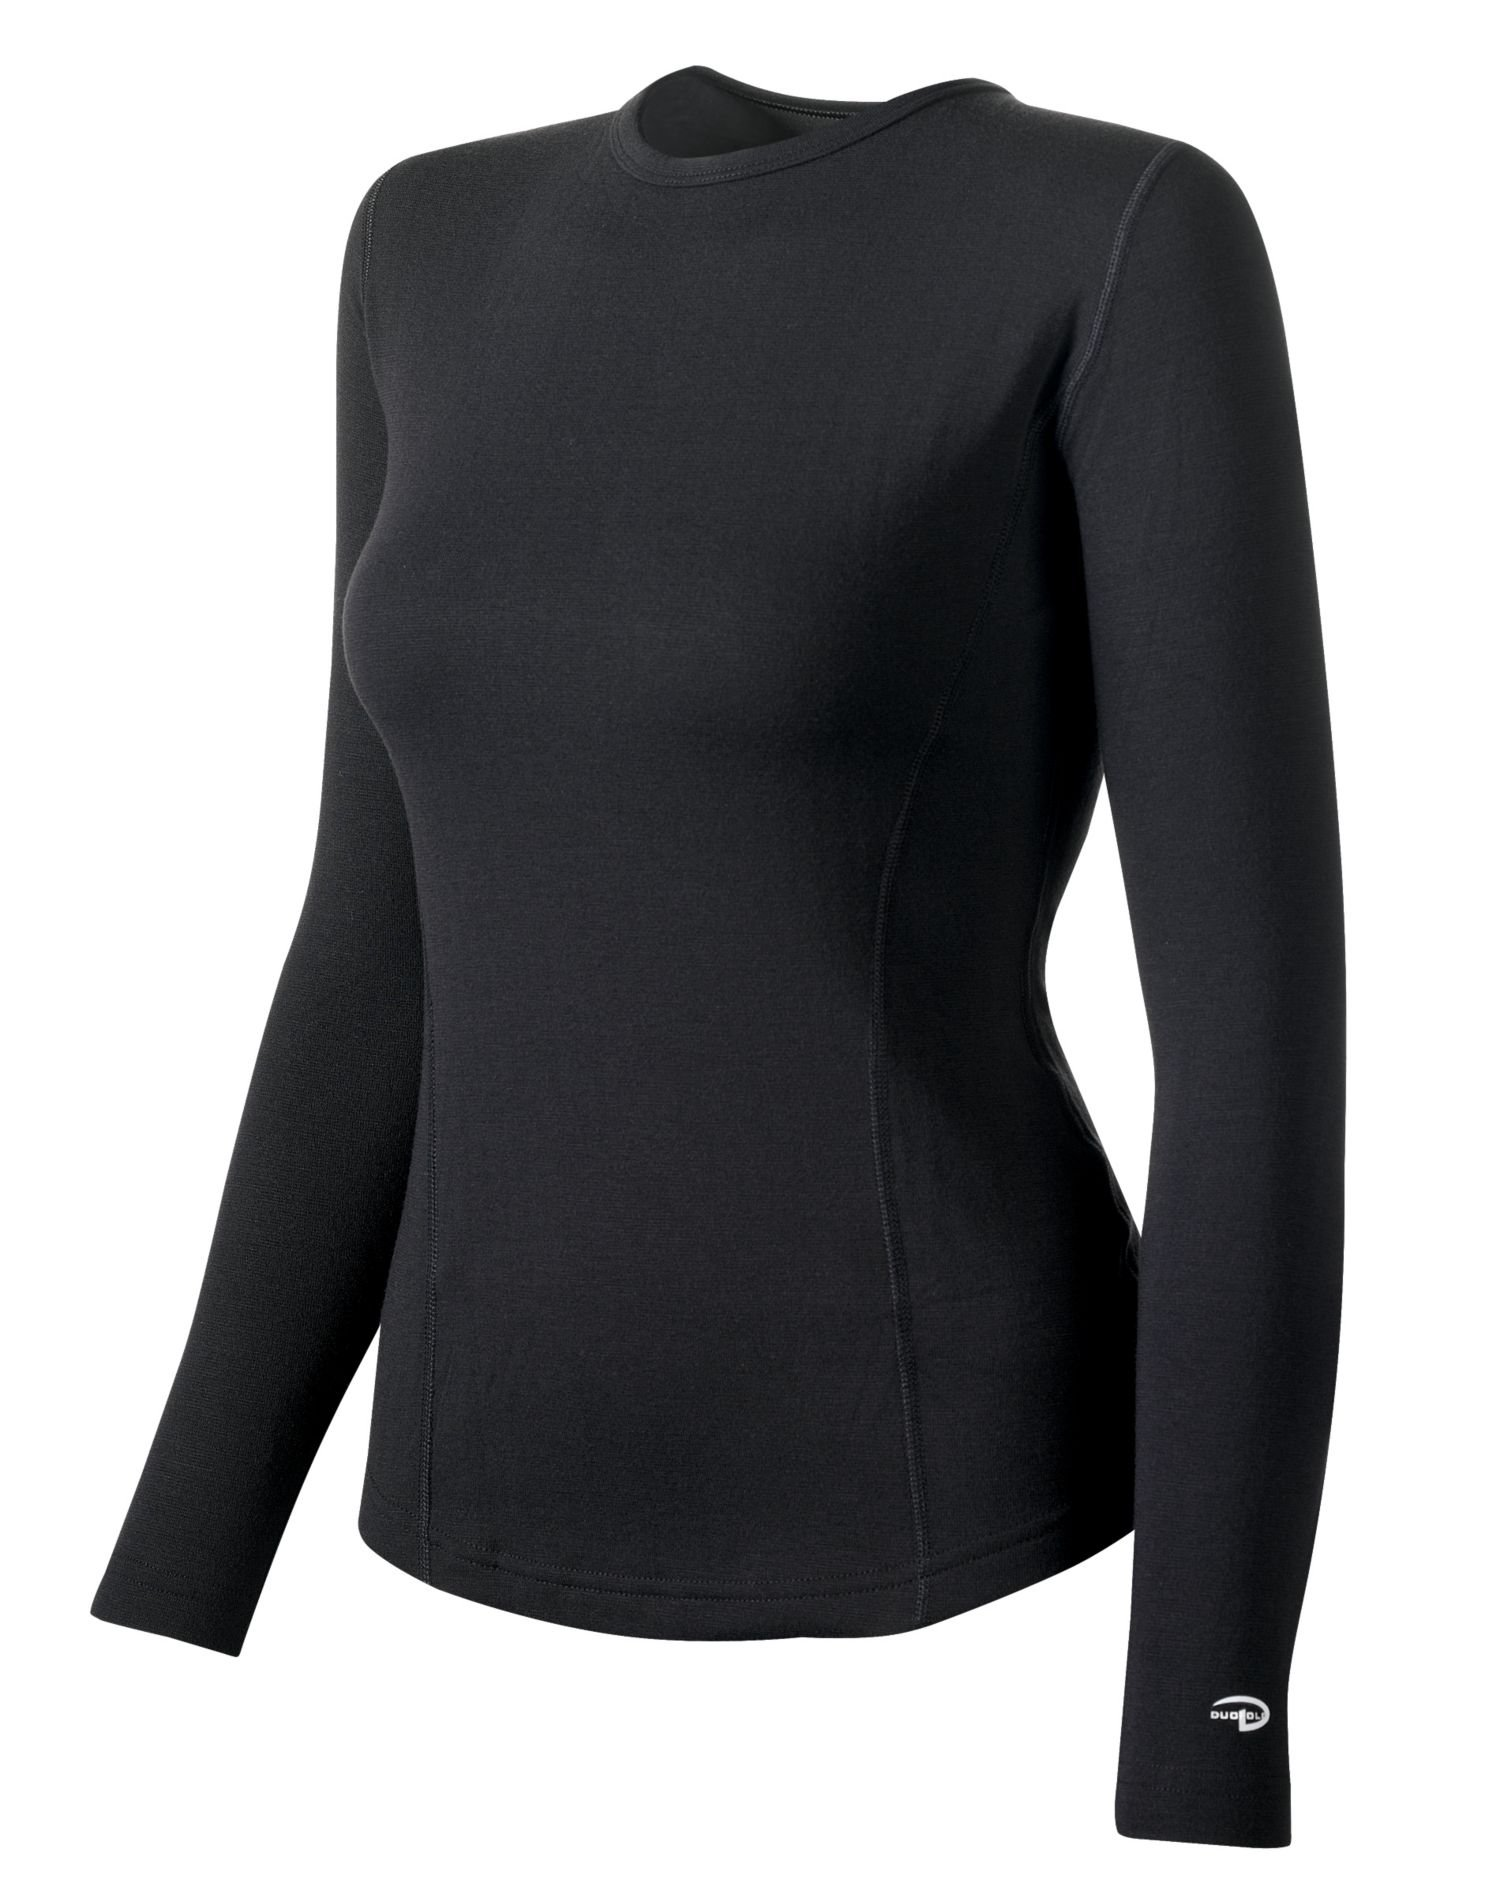 Duofold Women's Expedition Weight Two-Layer Thermal, Black, Medium